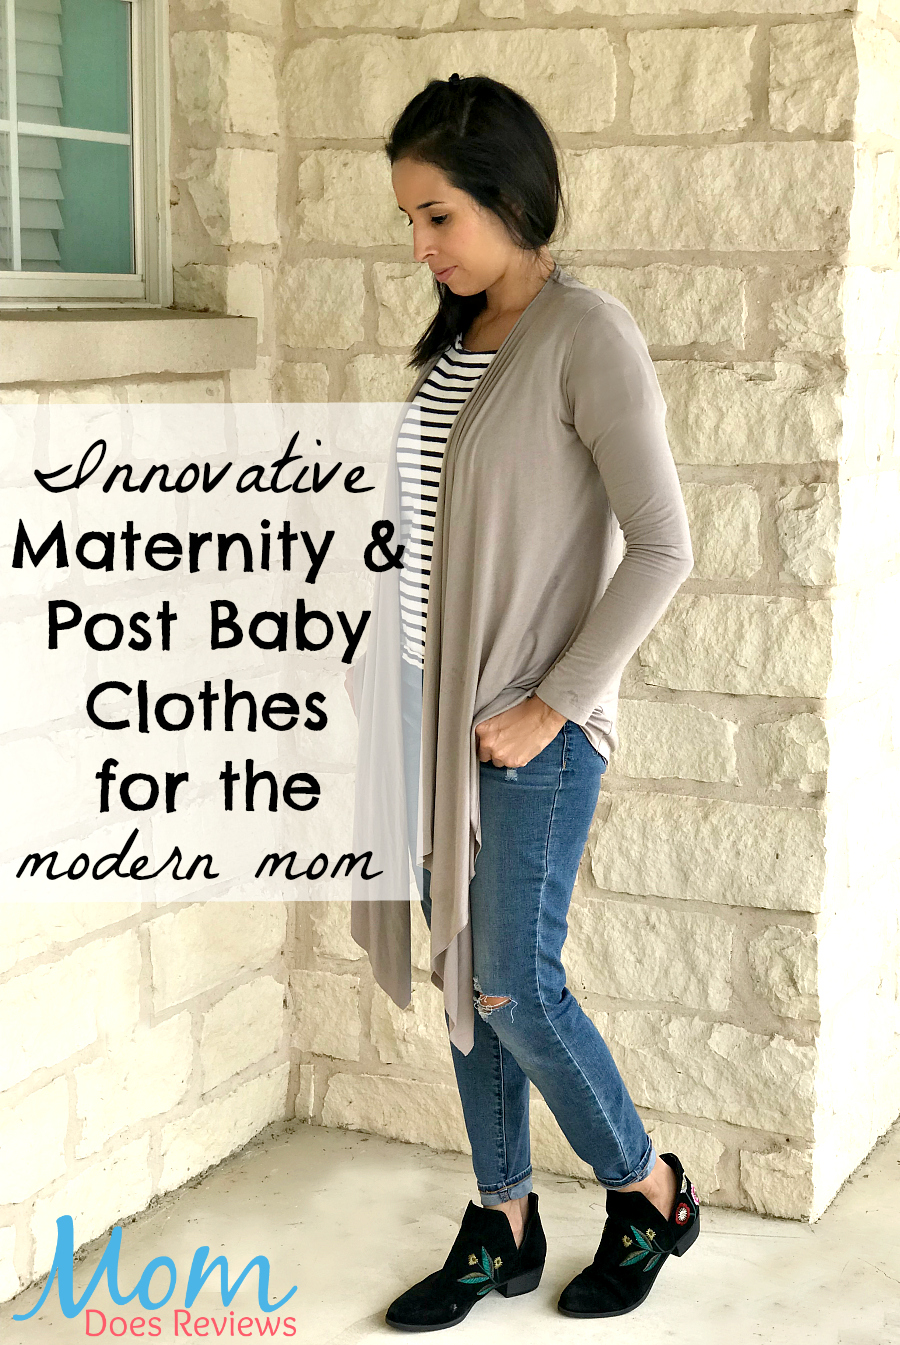 ff6522528a9bd Innovative Maternity Clothes For The Modern Mom By Mia Tango -